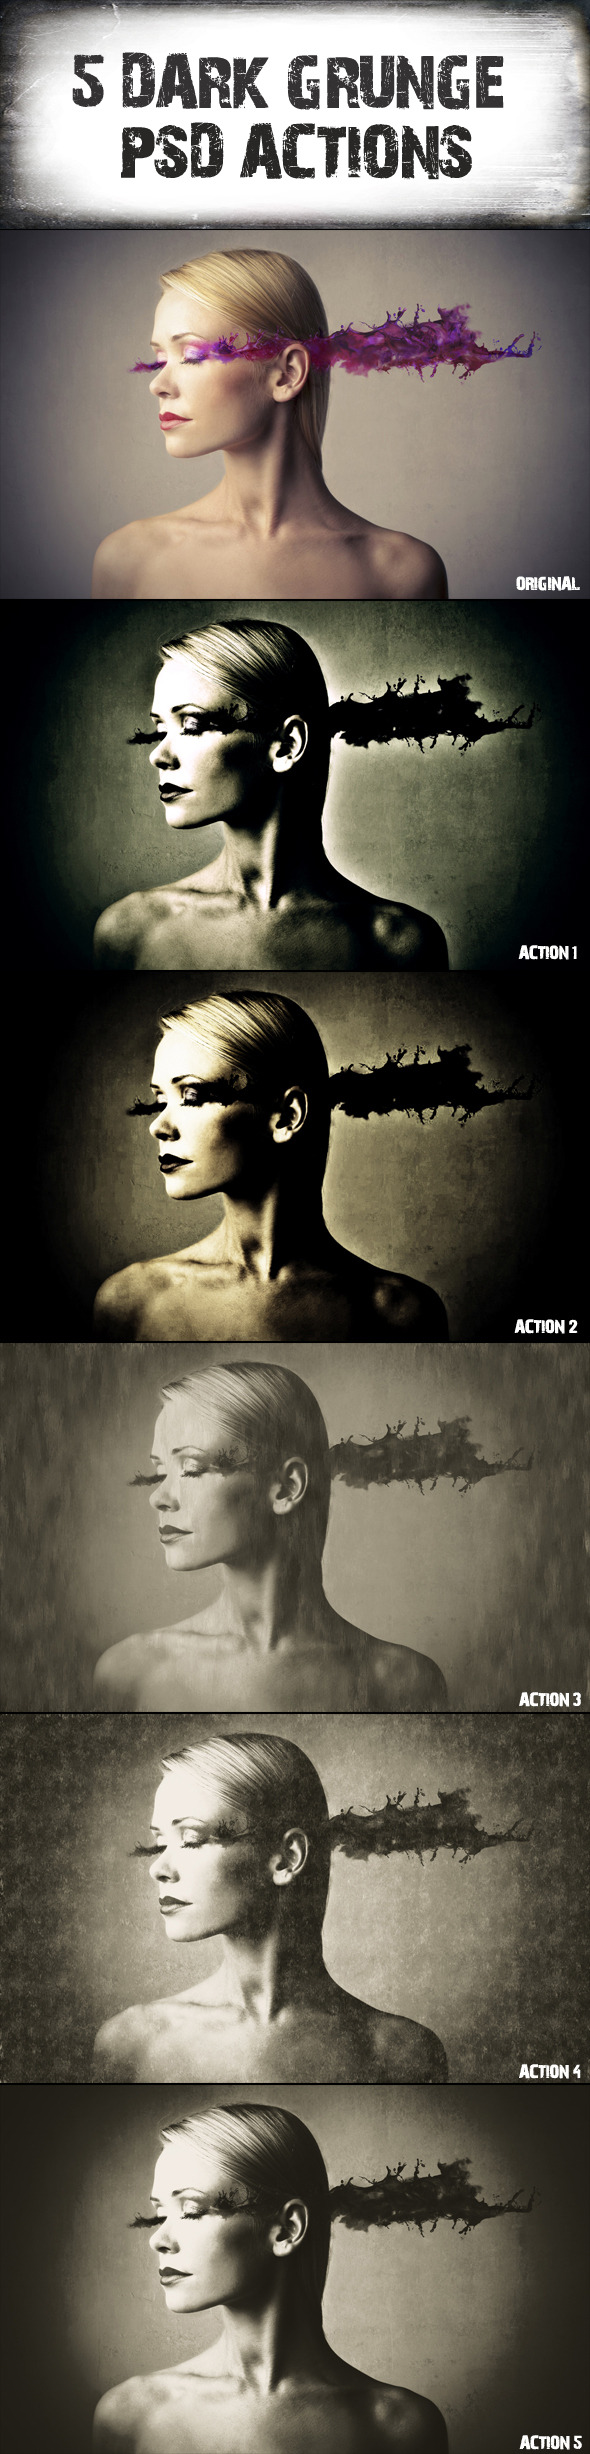 5 Dark Grunge Psd. Actions - Actions Photoshop